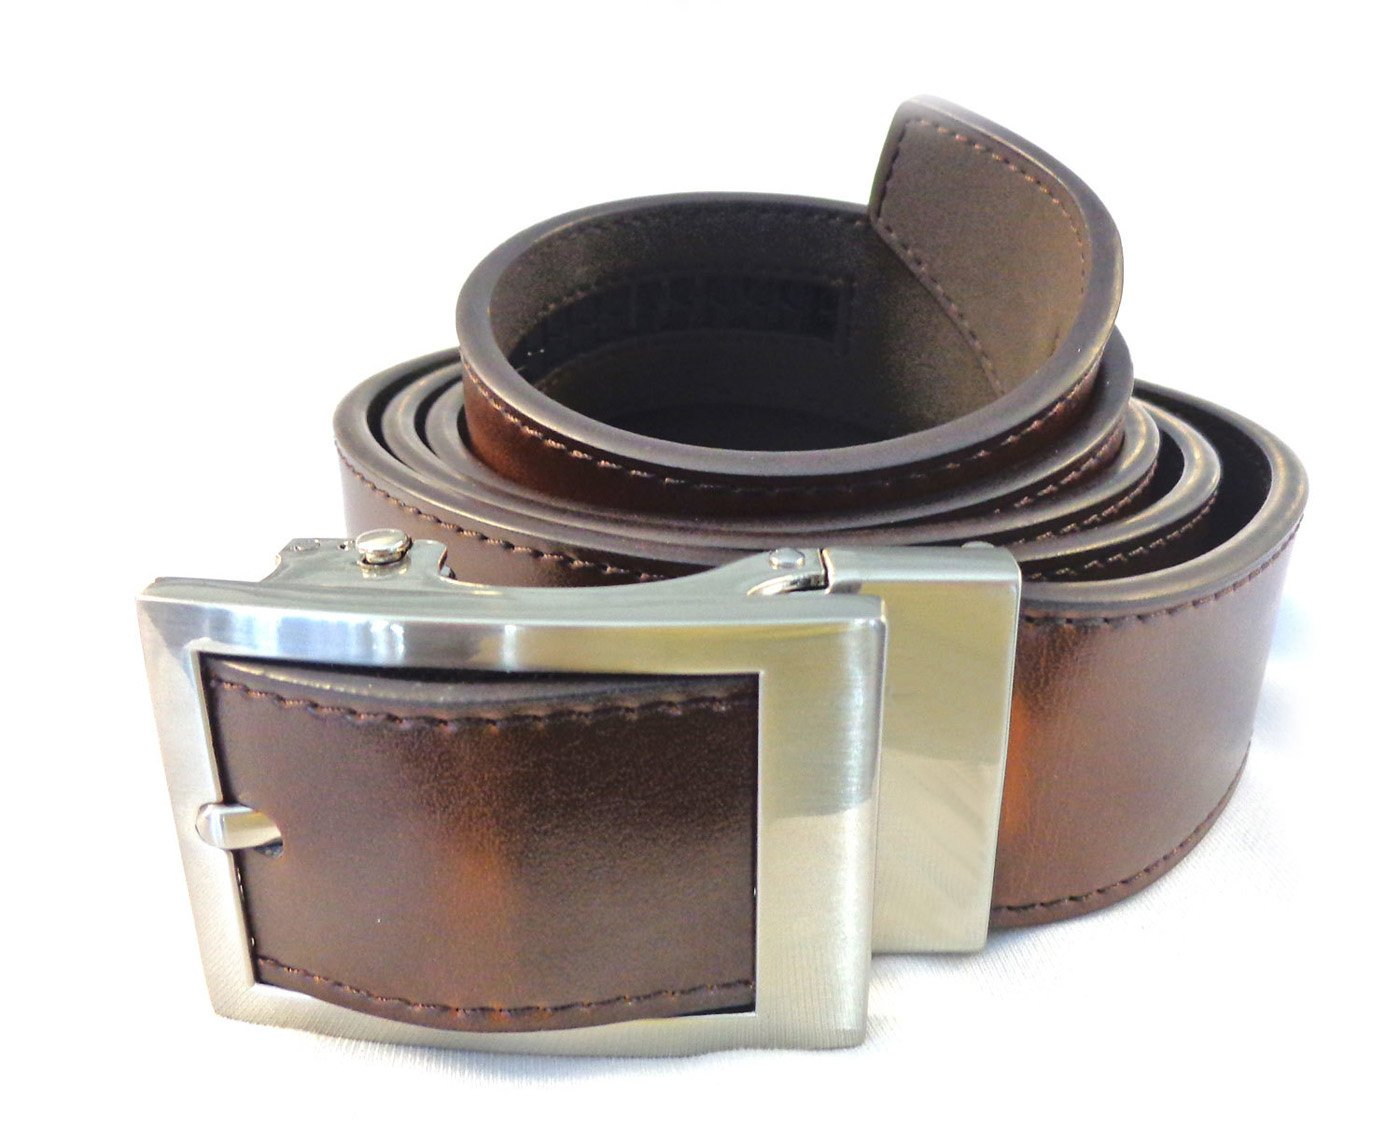 Nexbelt Mens Essential Classic Dress Belts Brown One Size Fits Most